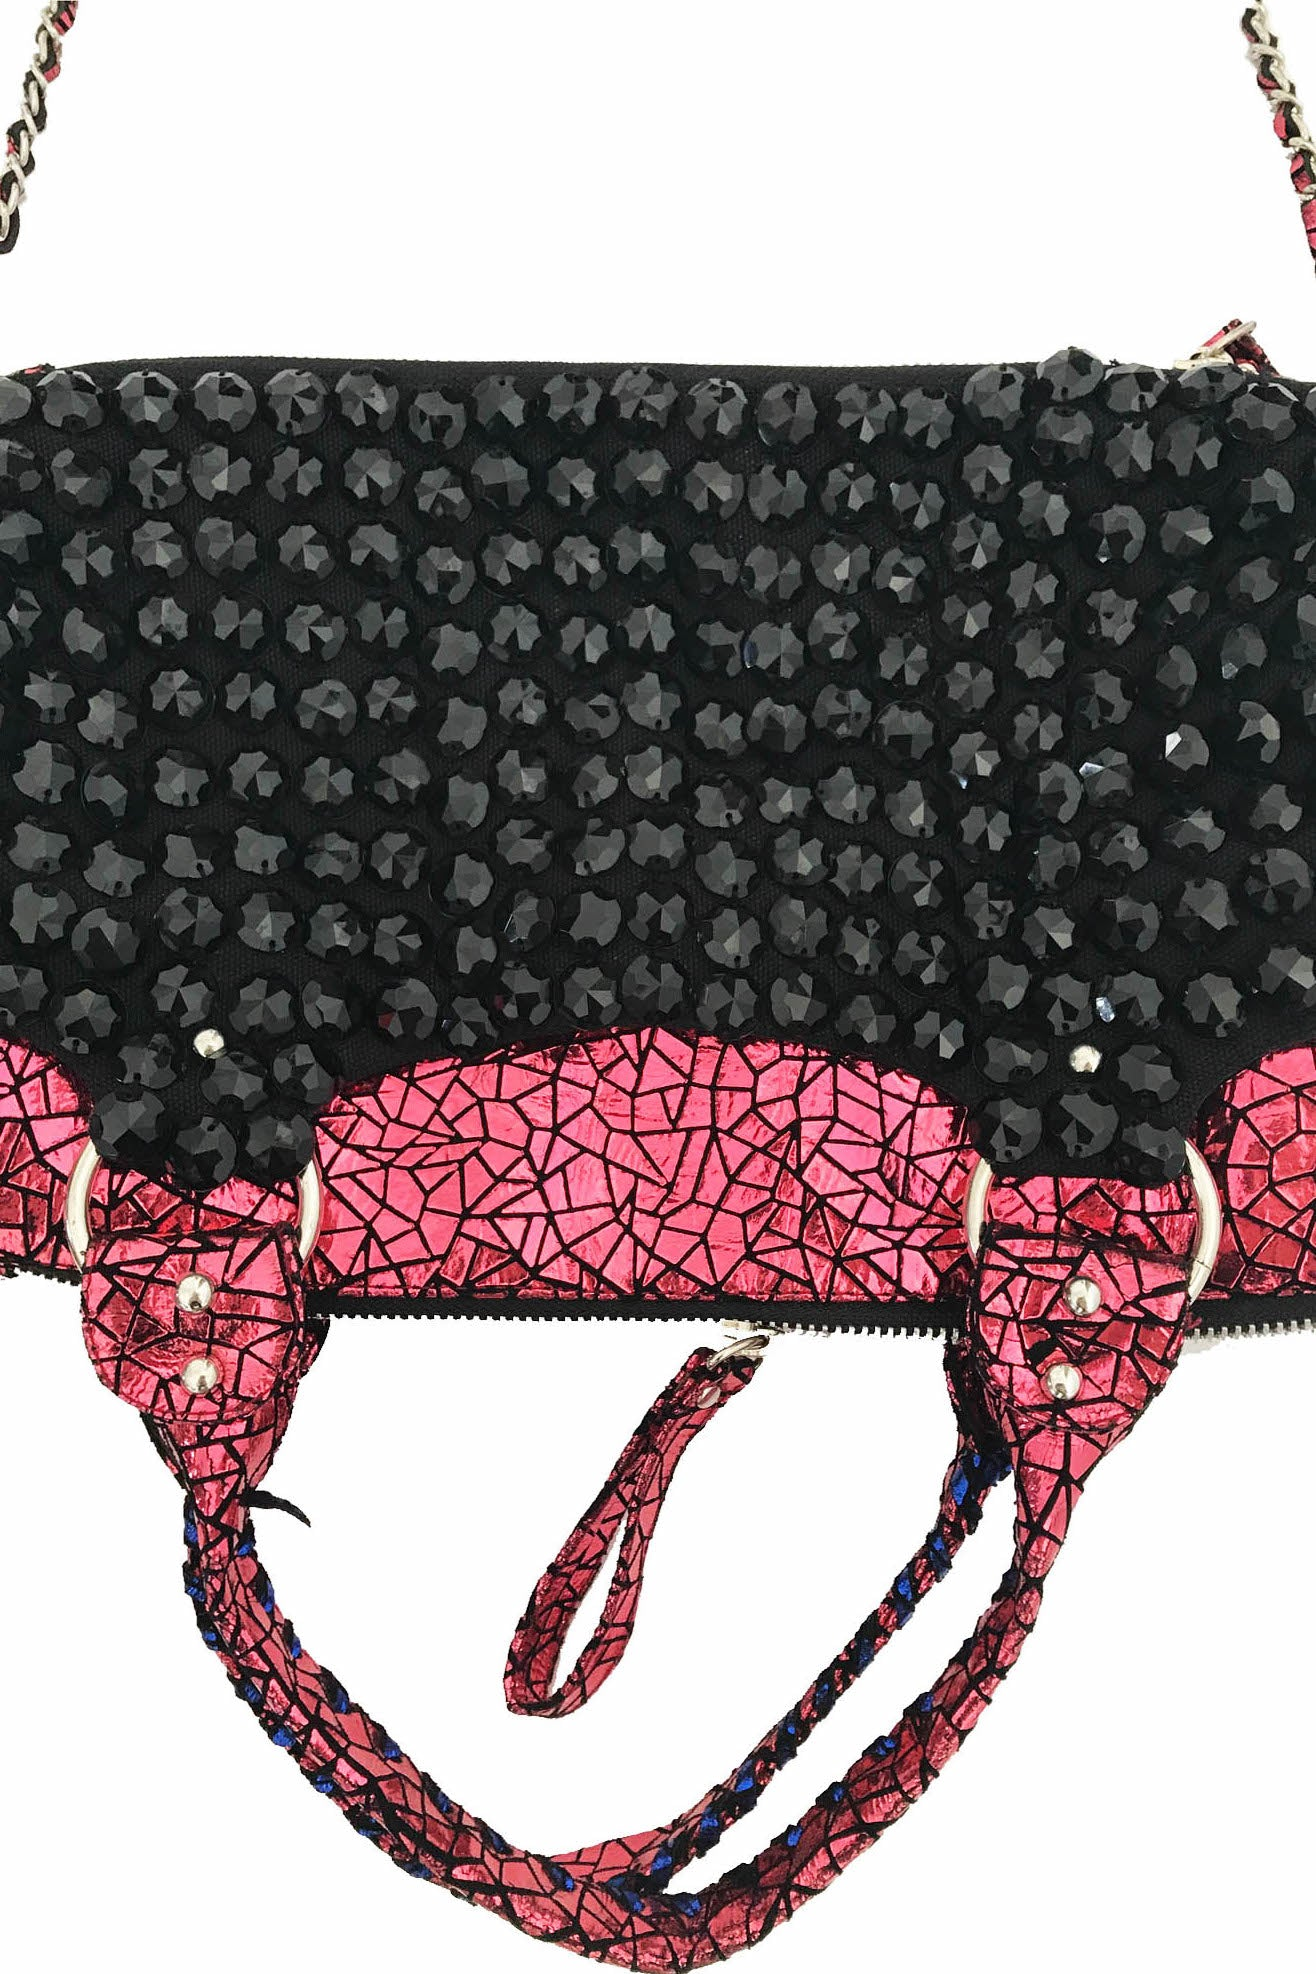 ONE-OFF!! Pink and Black Upside down bag